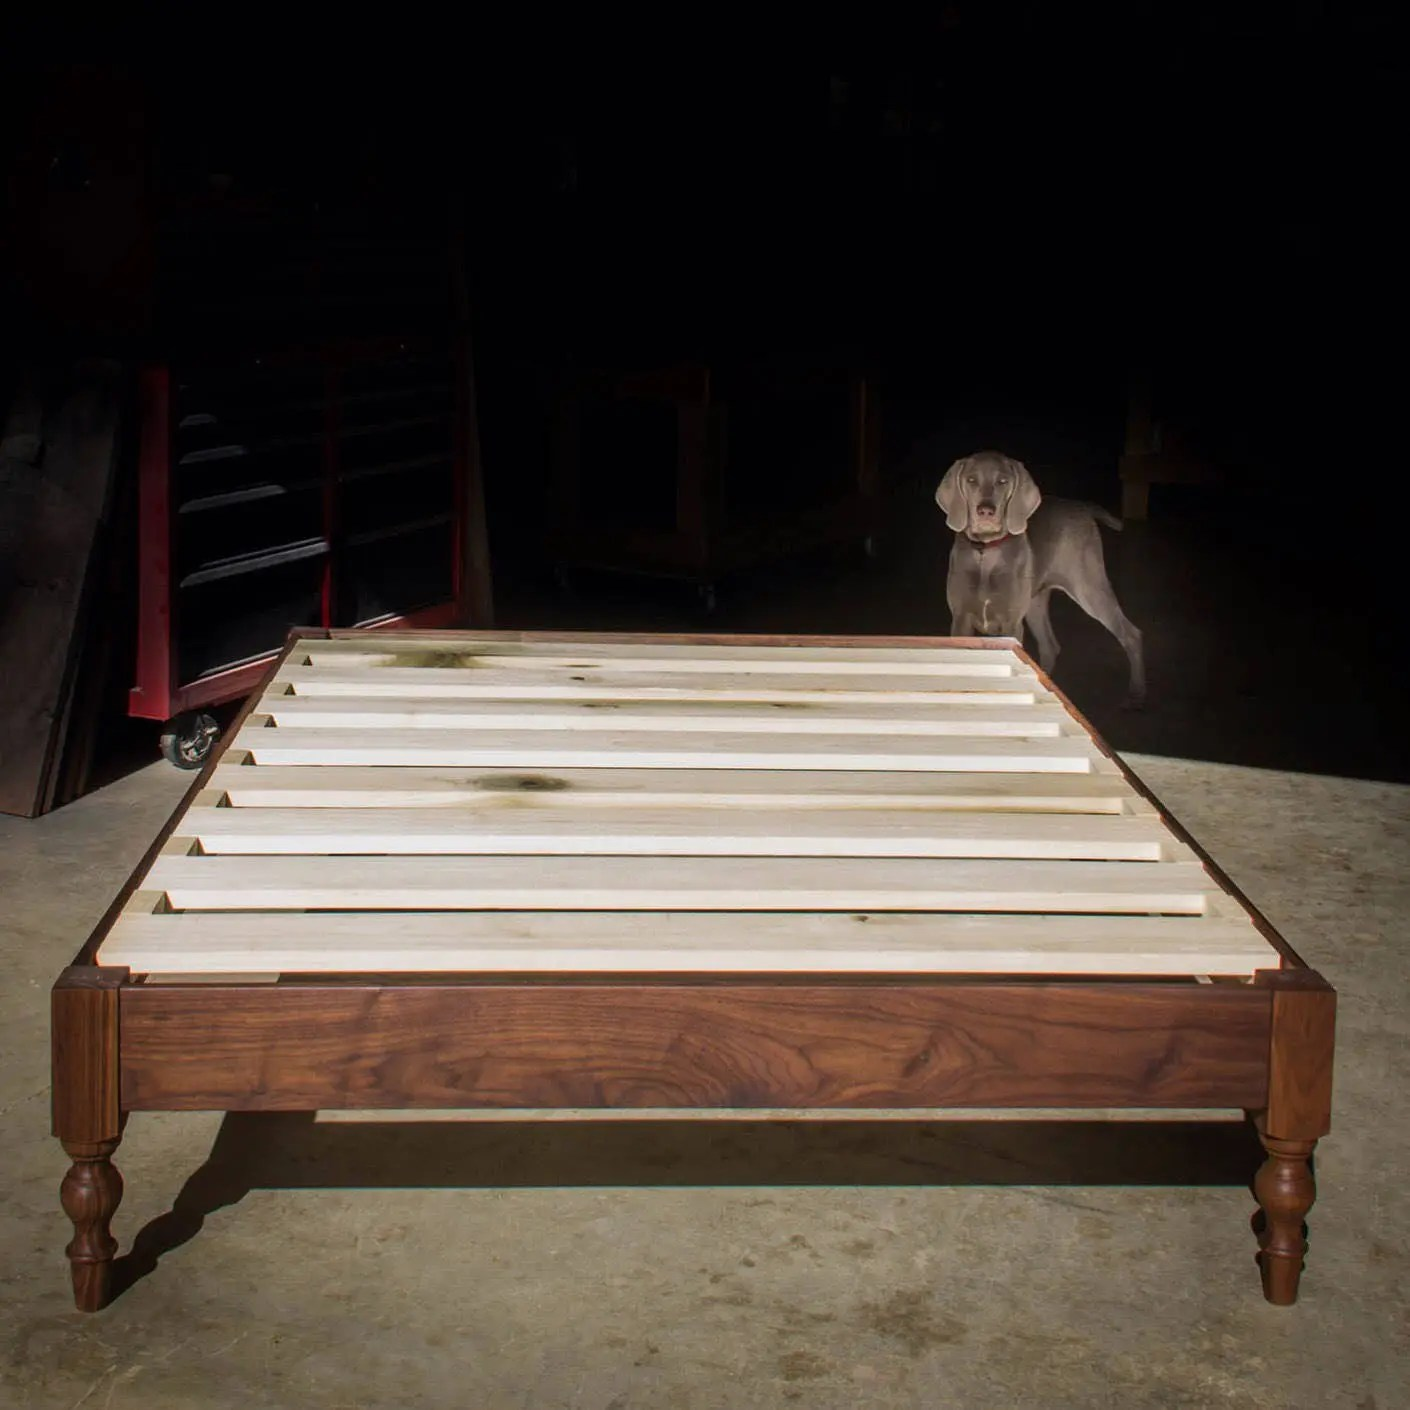 Under Bed Storage Frame Walnut Hardwood Libby Platform Bed Frame Turned Legs Shipping Included Slats Optional